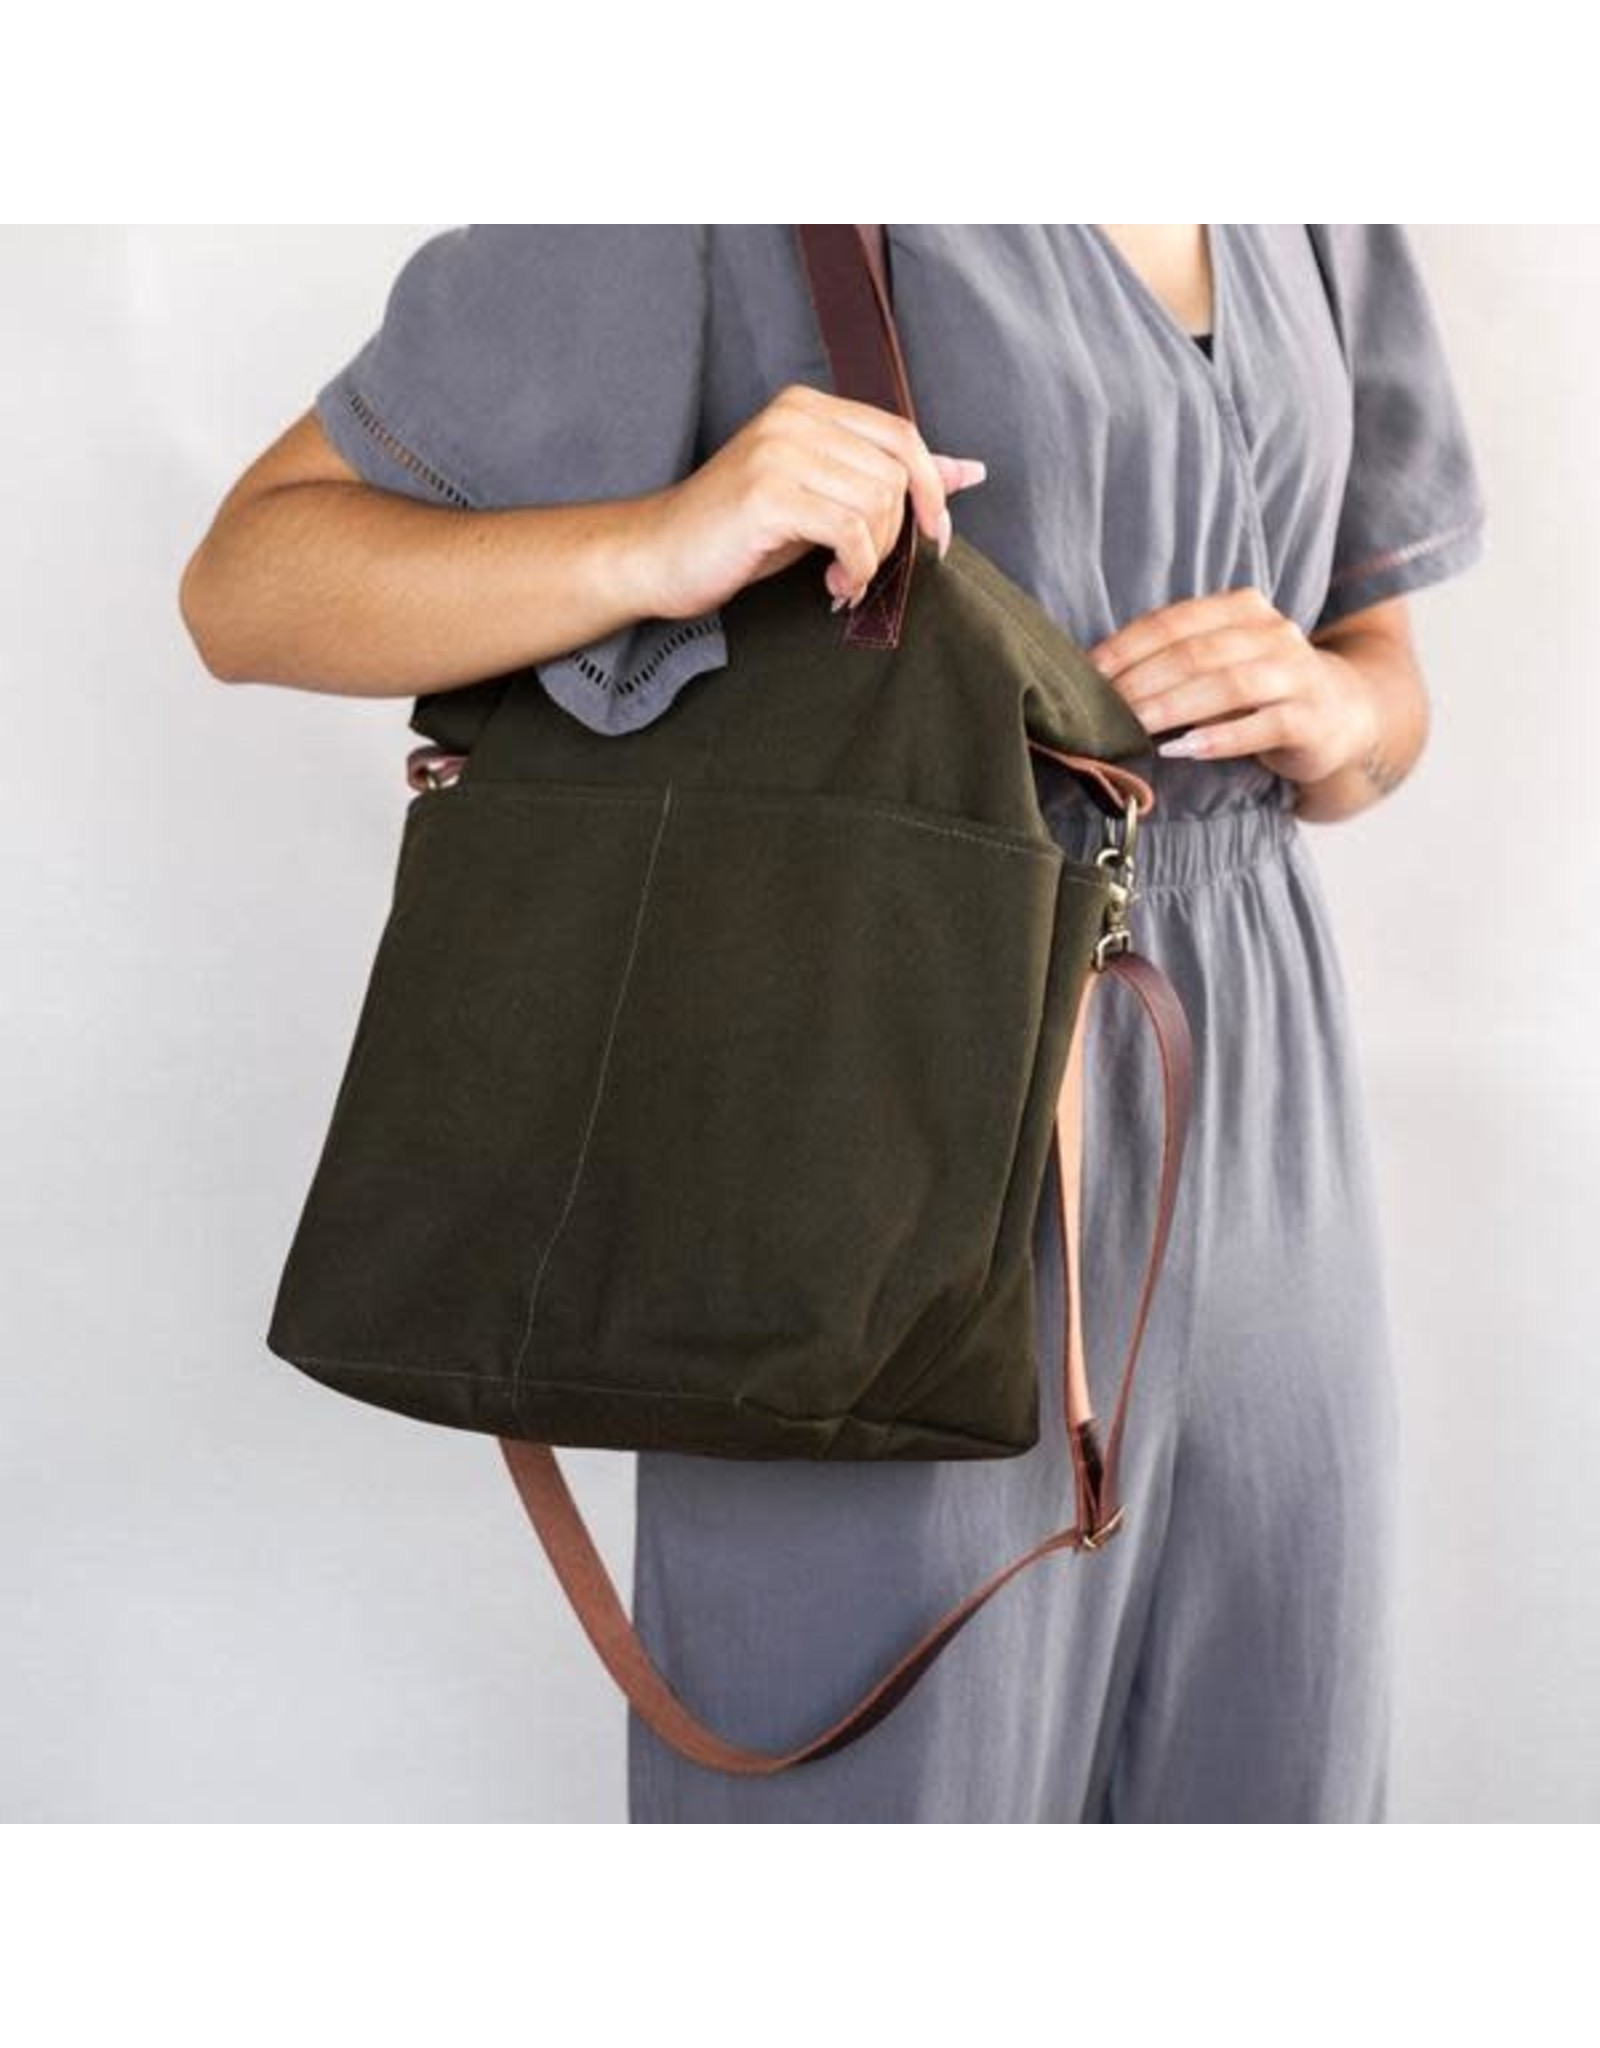 Crossbody Project Tote - Olive Canvas - Twig & Horn